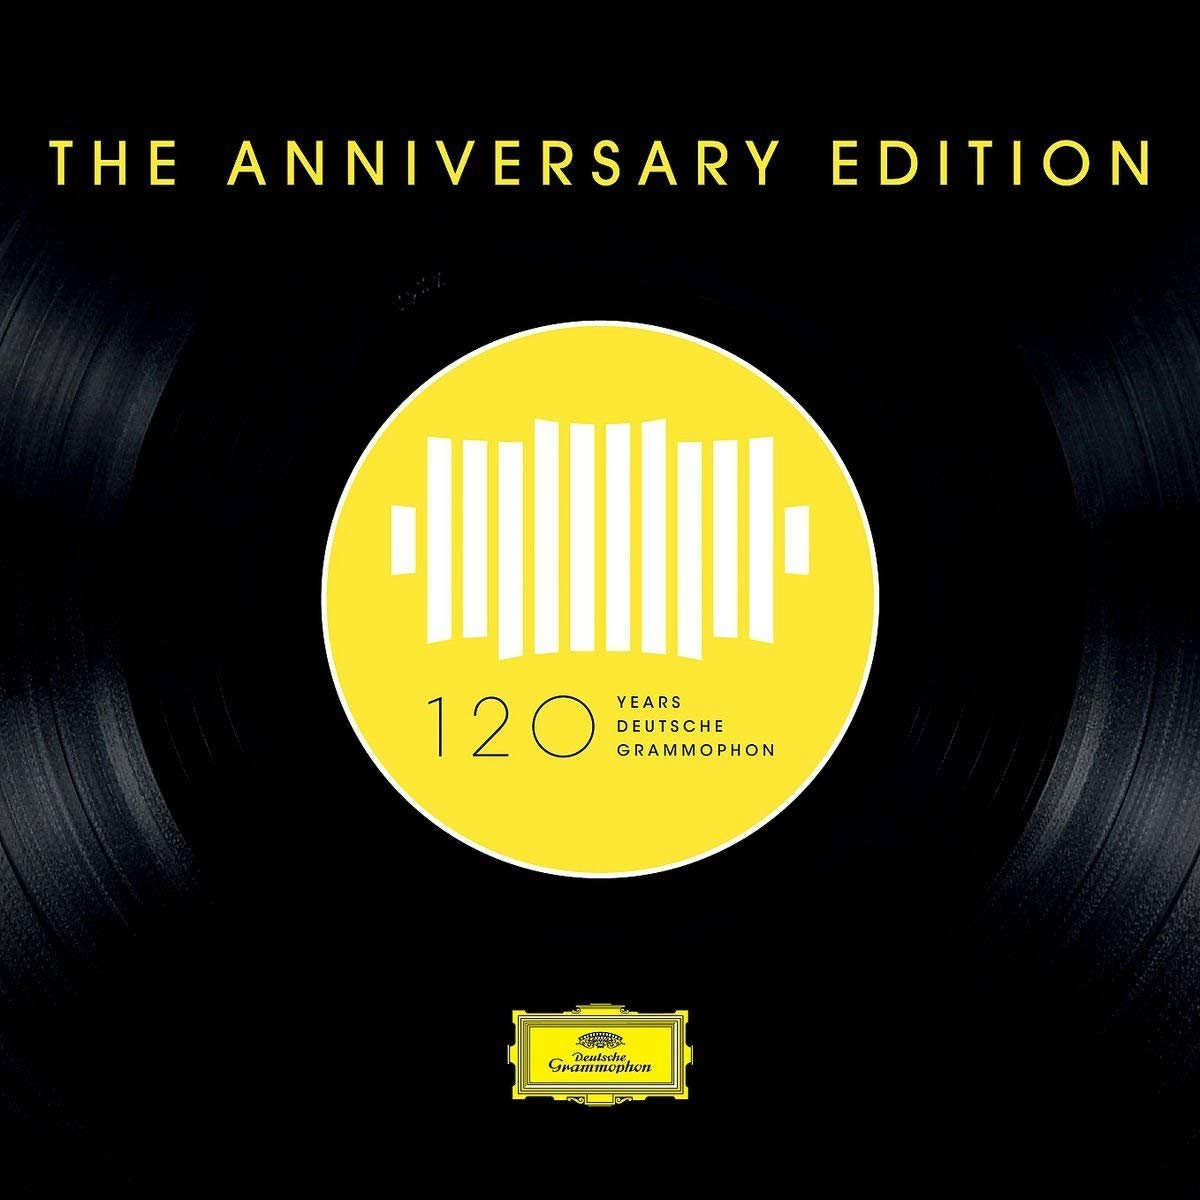 120 Years of Deutsche Grammophon – The Anniversary Edition